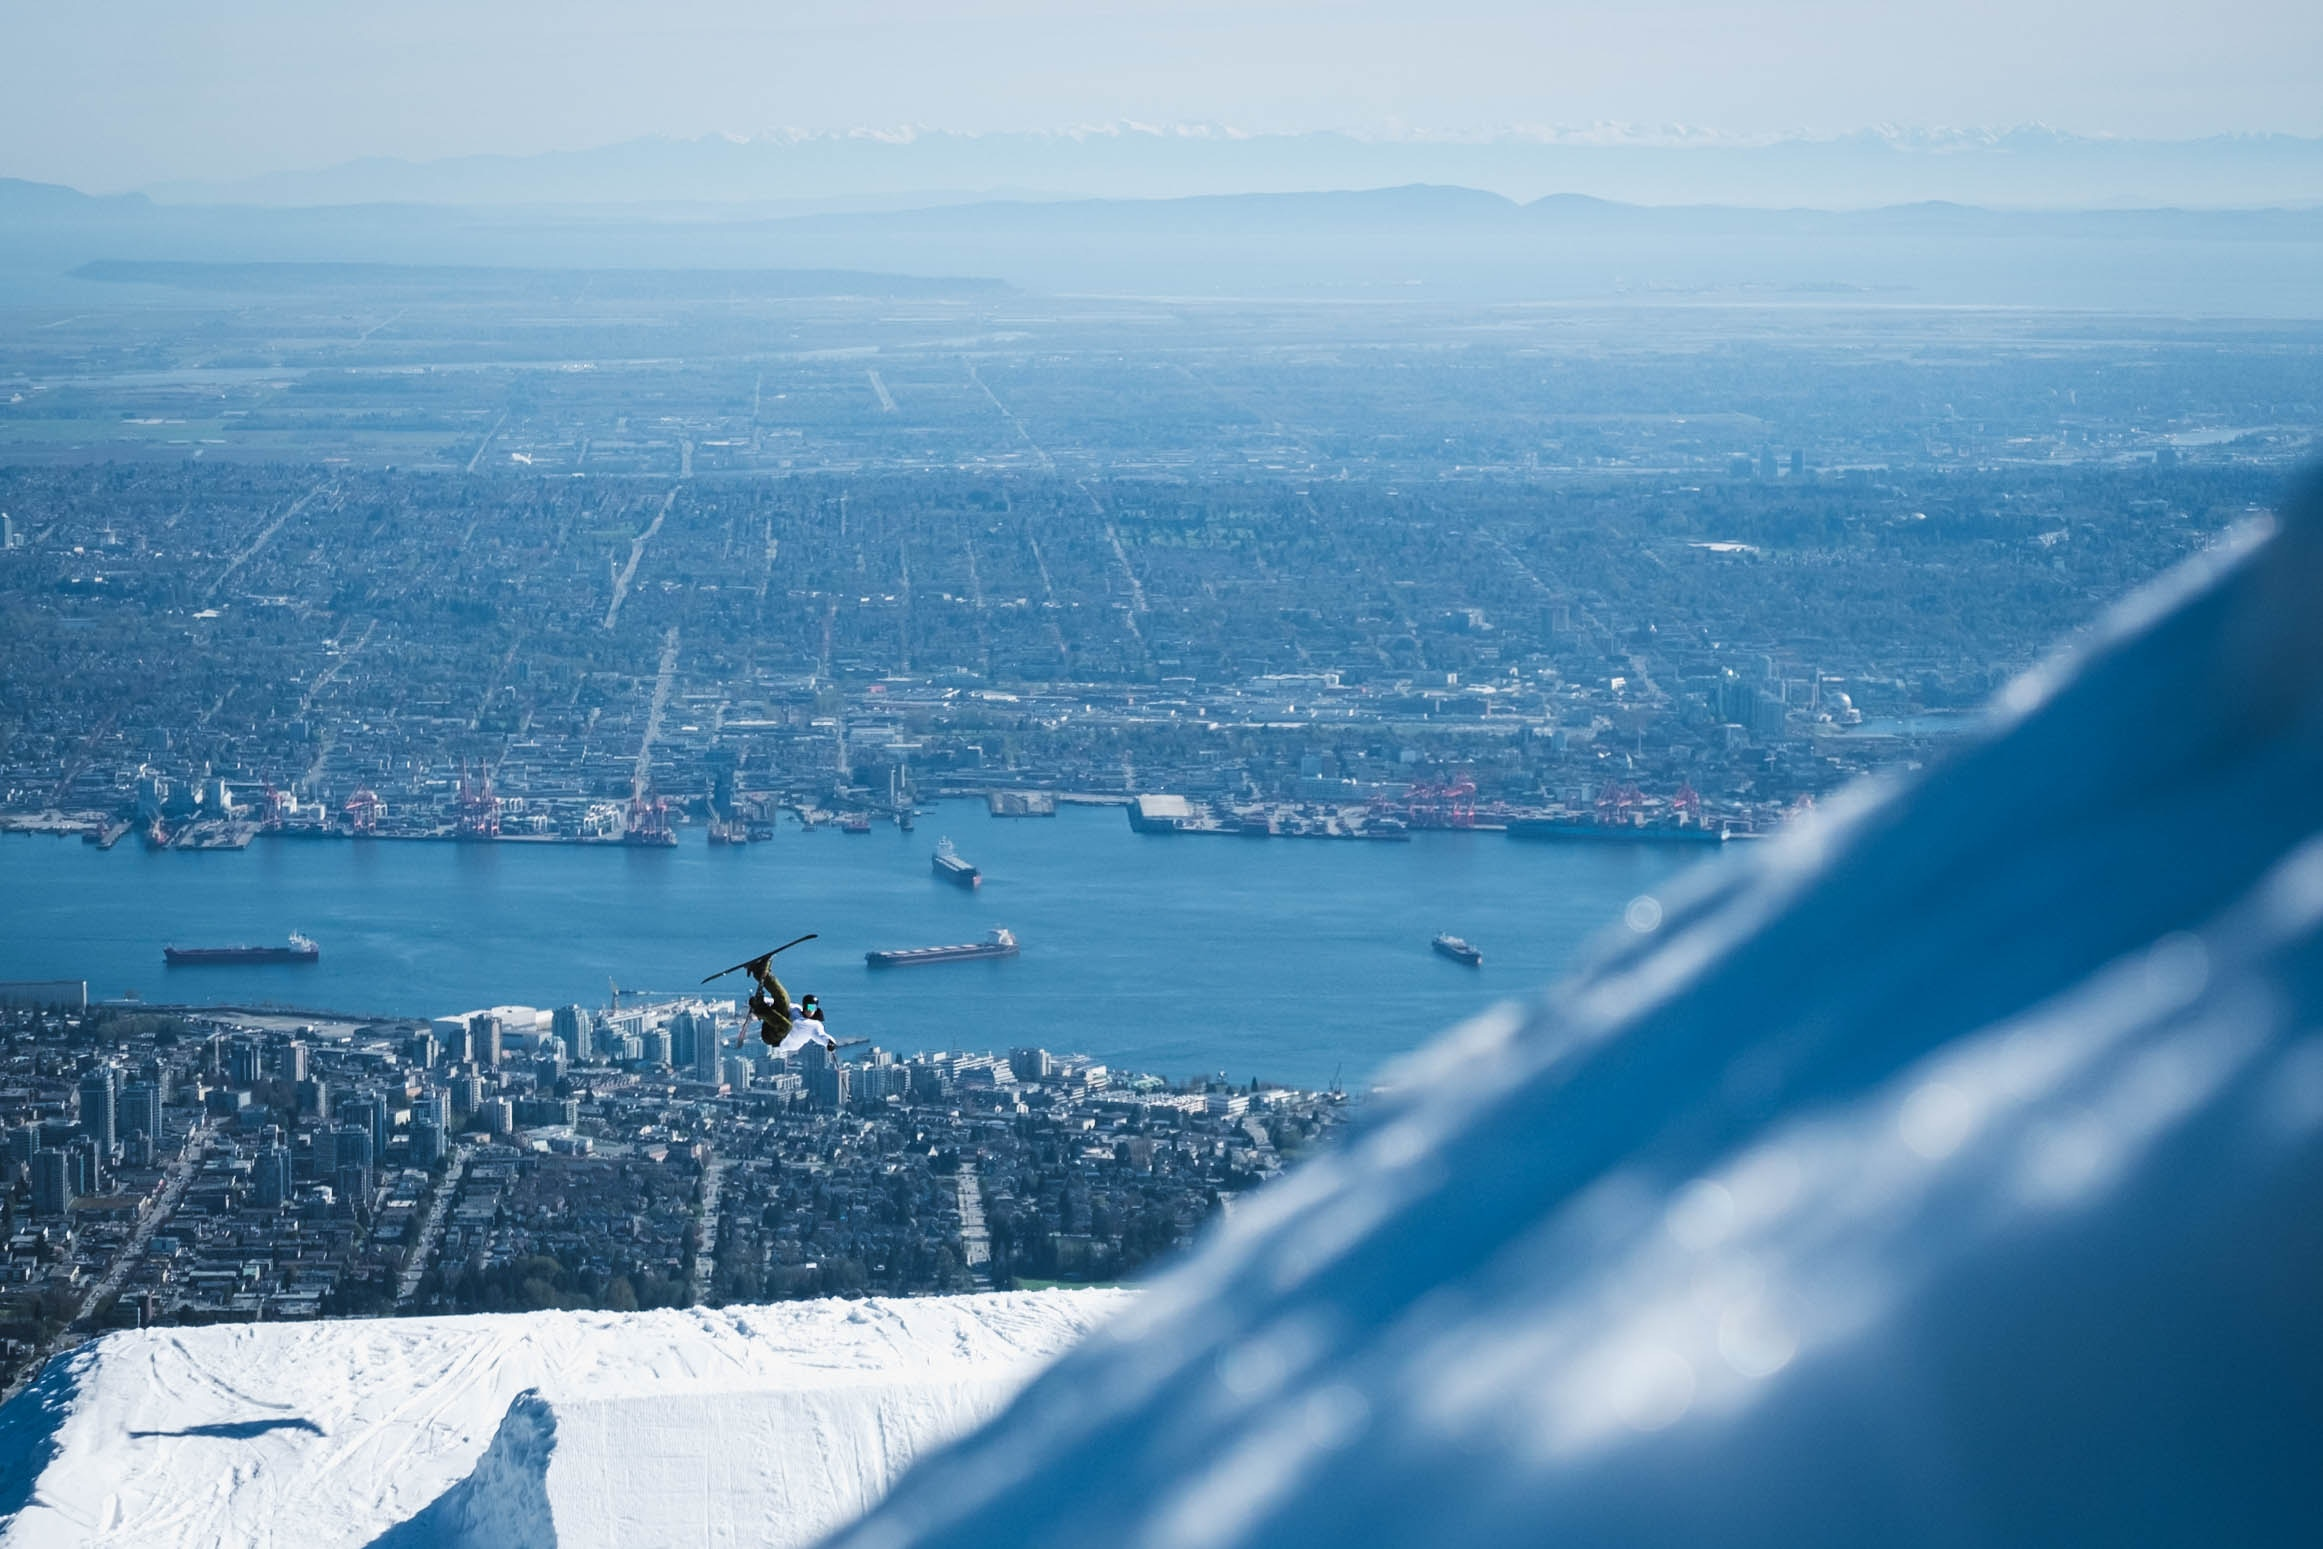 Skiing at Grouse Mountain above Vancouver